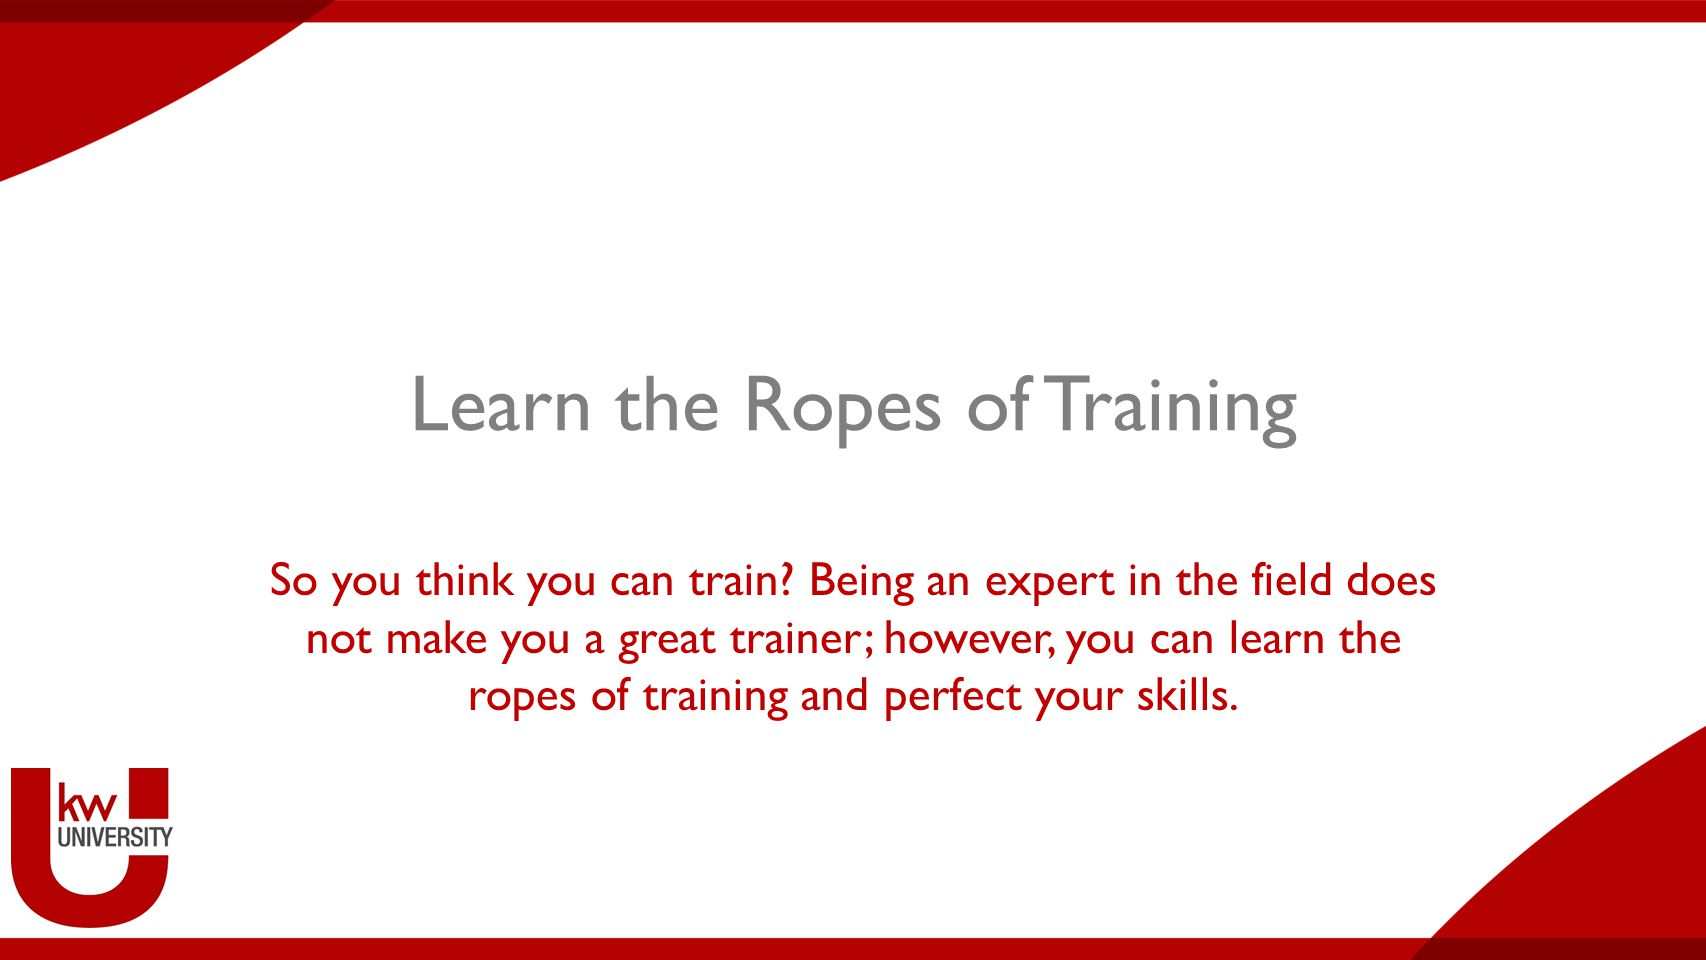 Learn the Ropes of Training